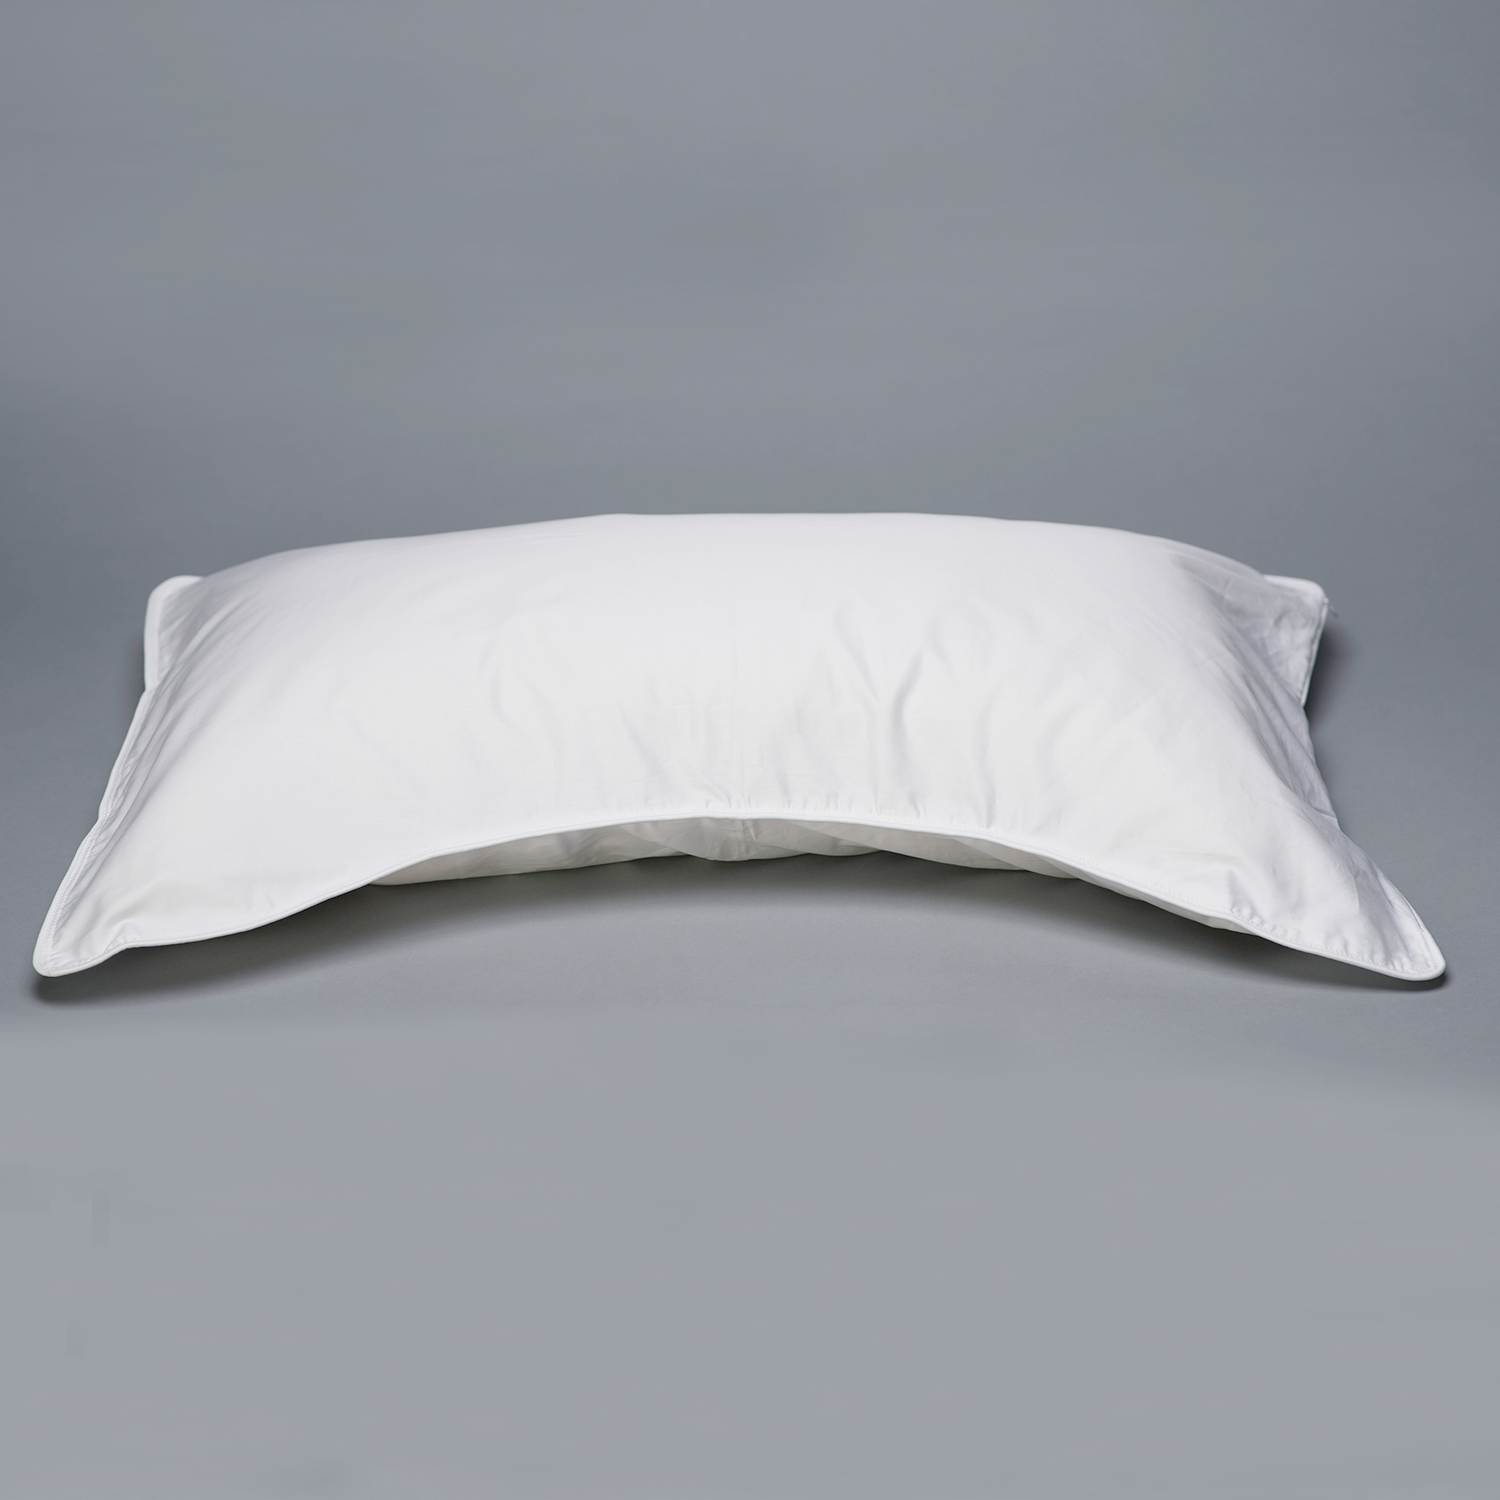 recommended for sleeper a side sleepers large stunning size cushion gallery good pillows best pillow blanket neck